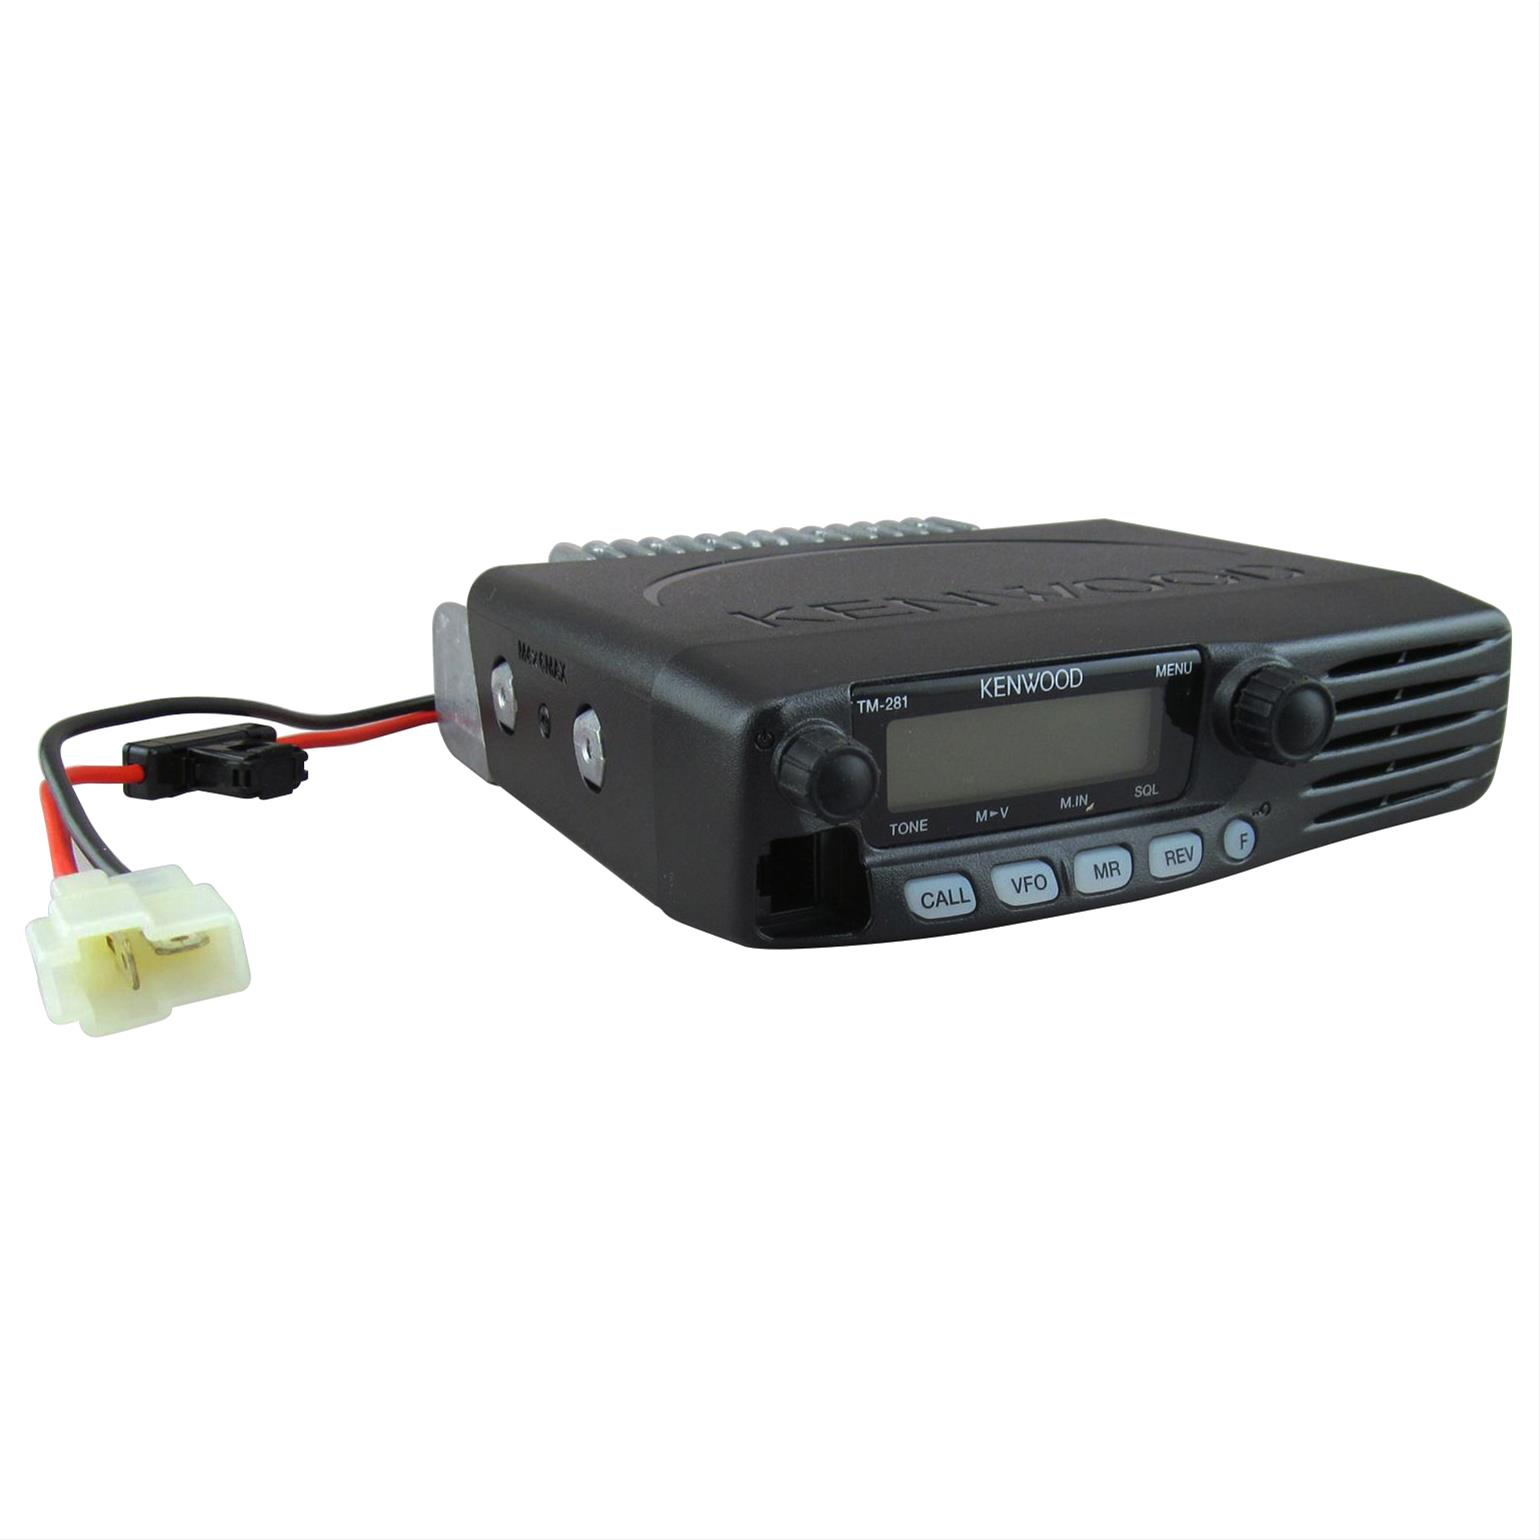 Kenwood TM-281A 2 Meter Mobile Transceivers TM-281A